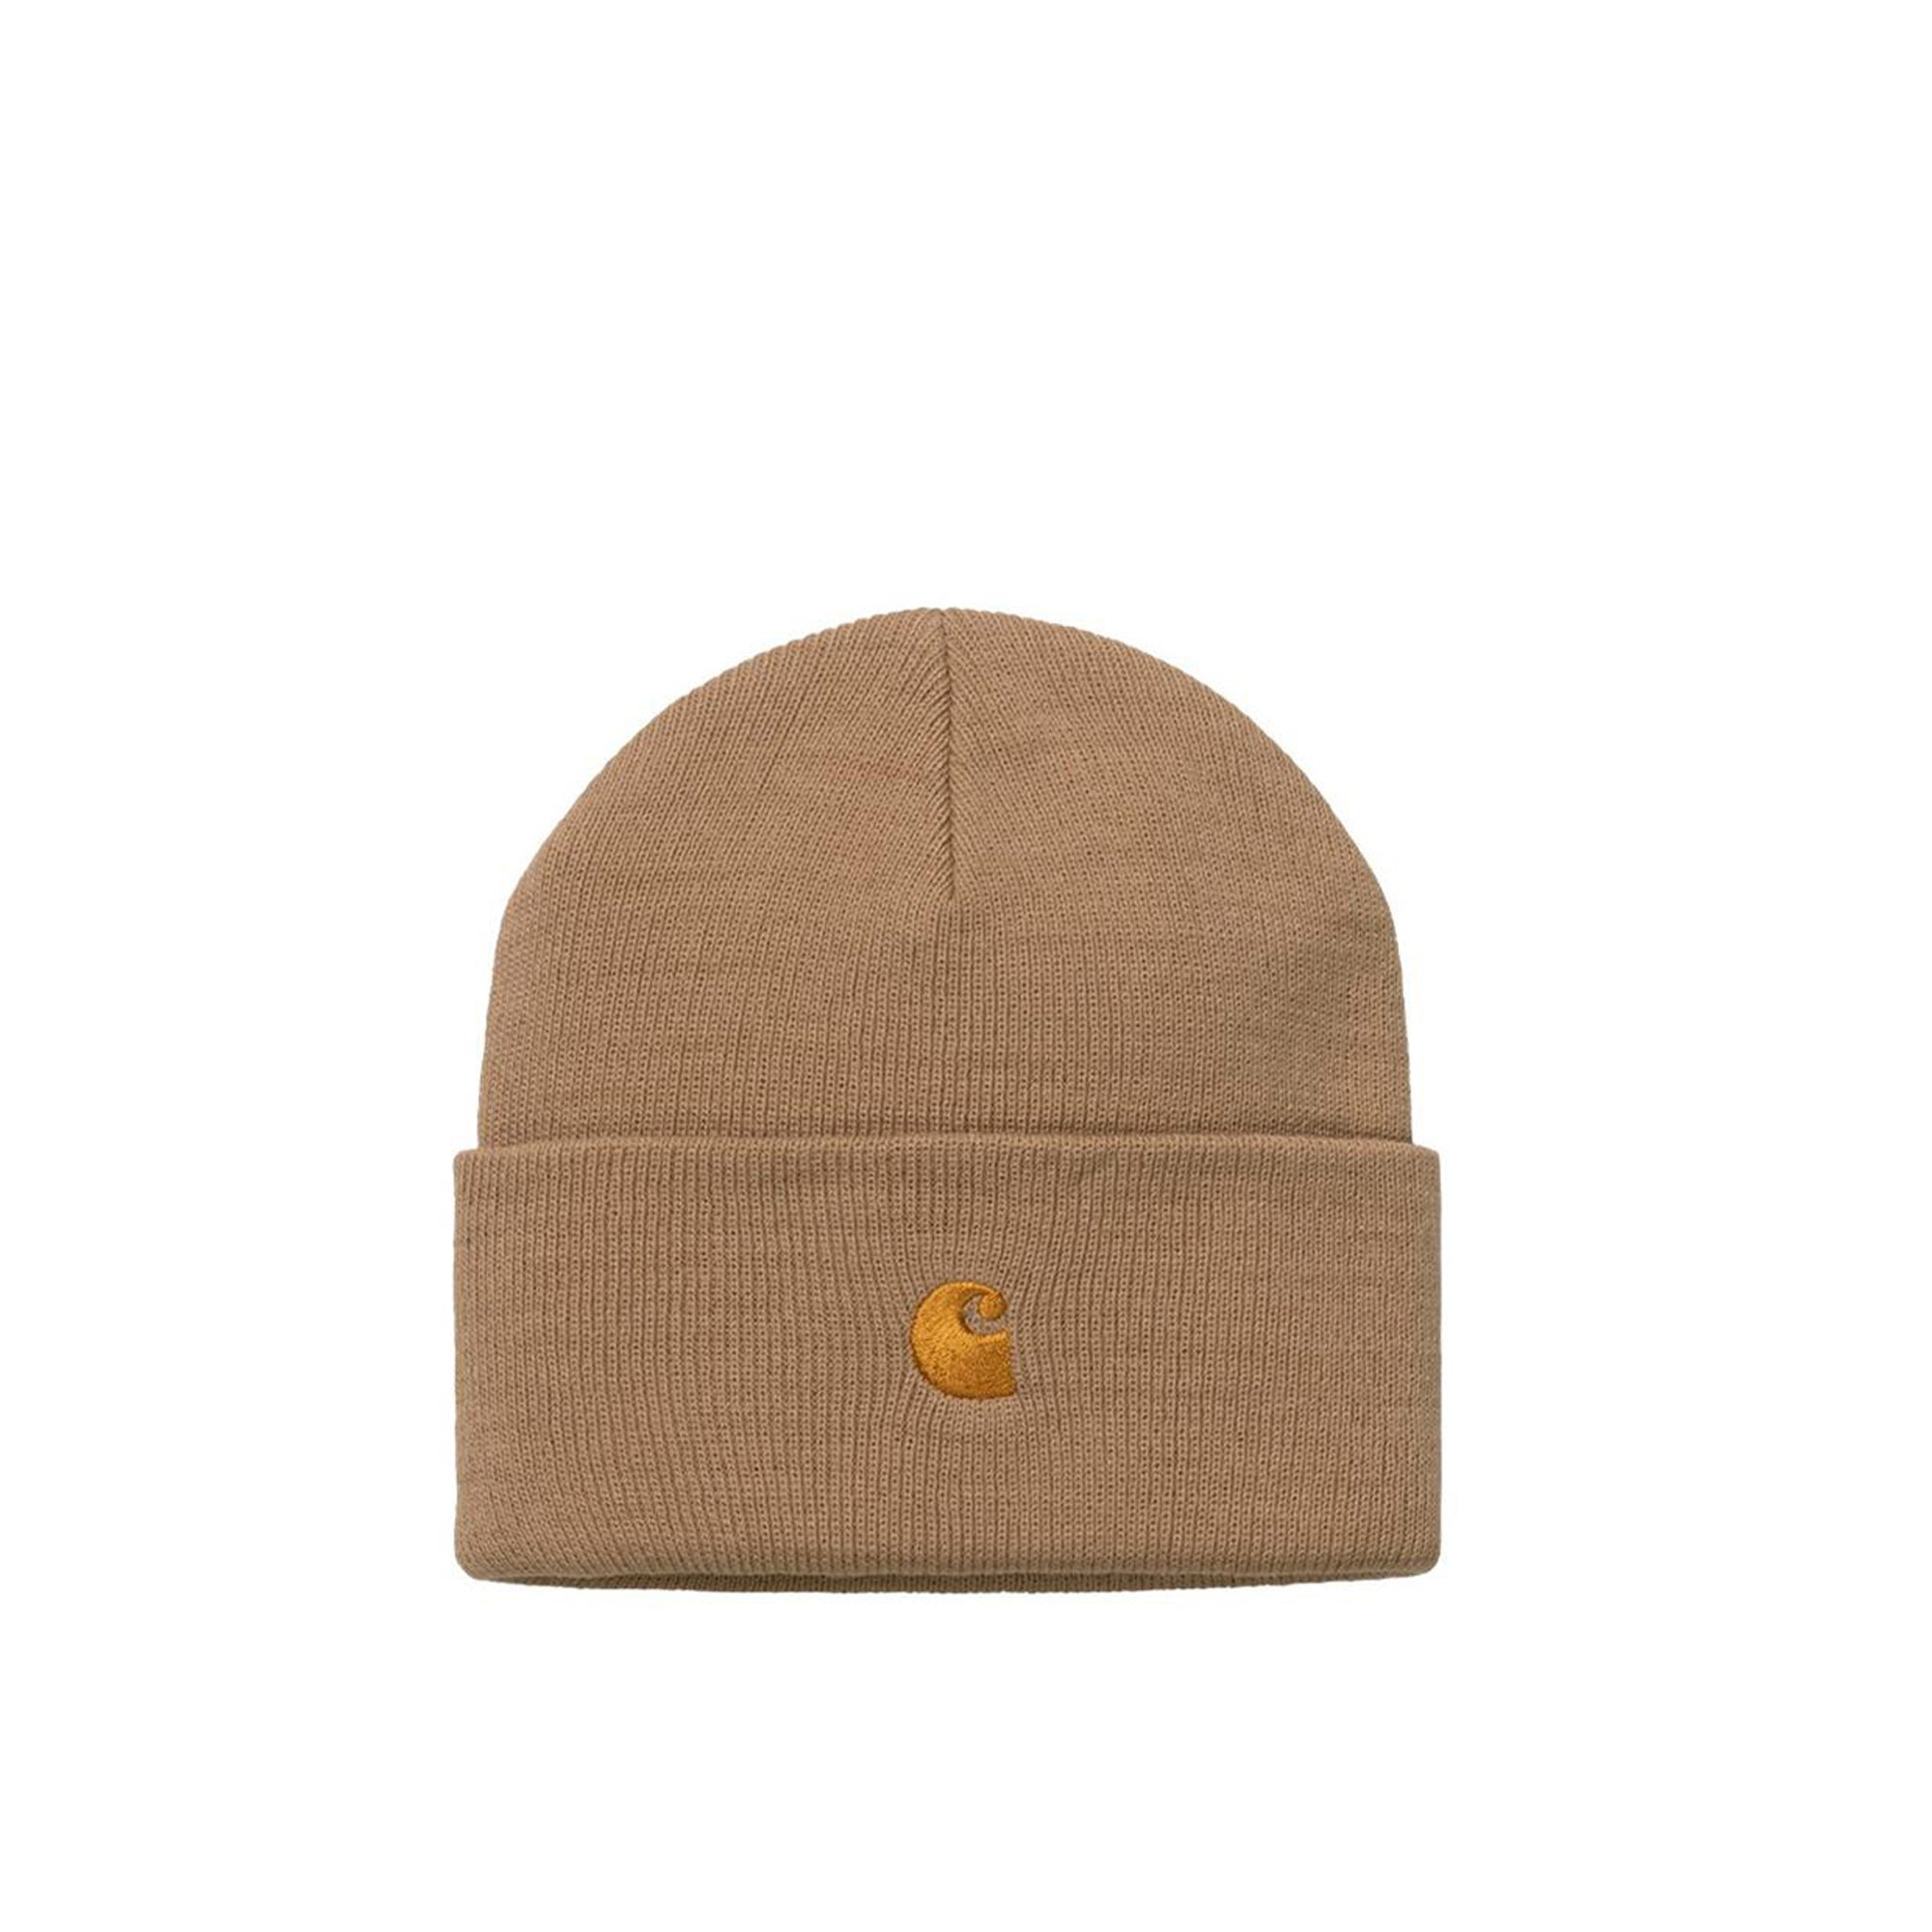 Carhartt WIP Chase Beanie: Dusty Hamilton Brown / Gold - The Union Project